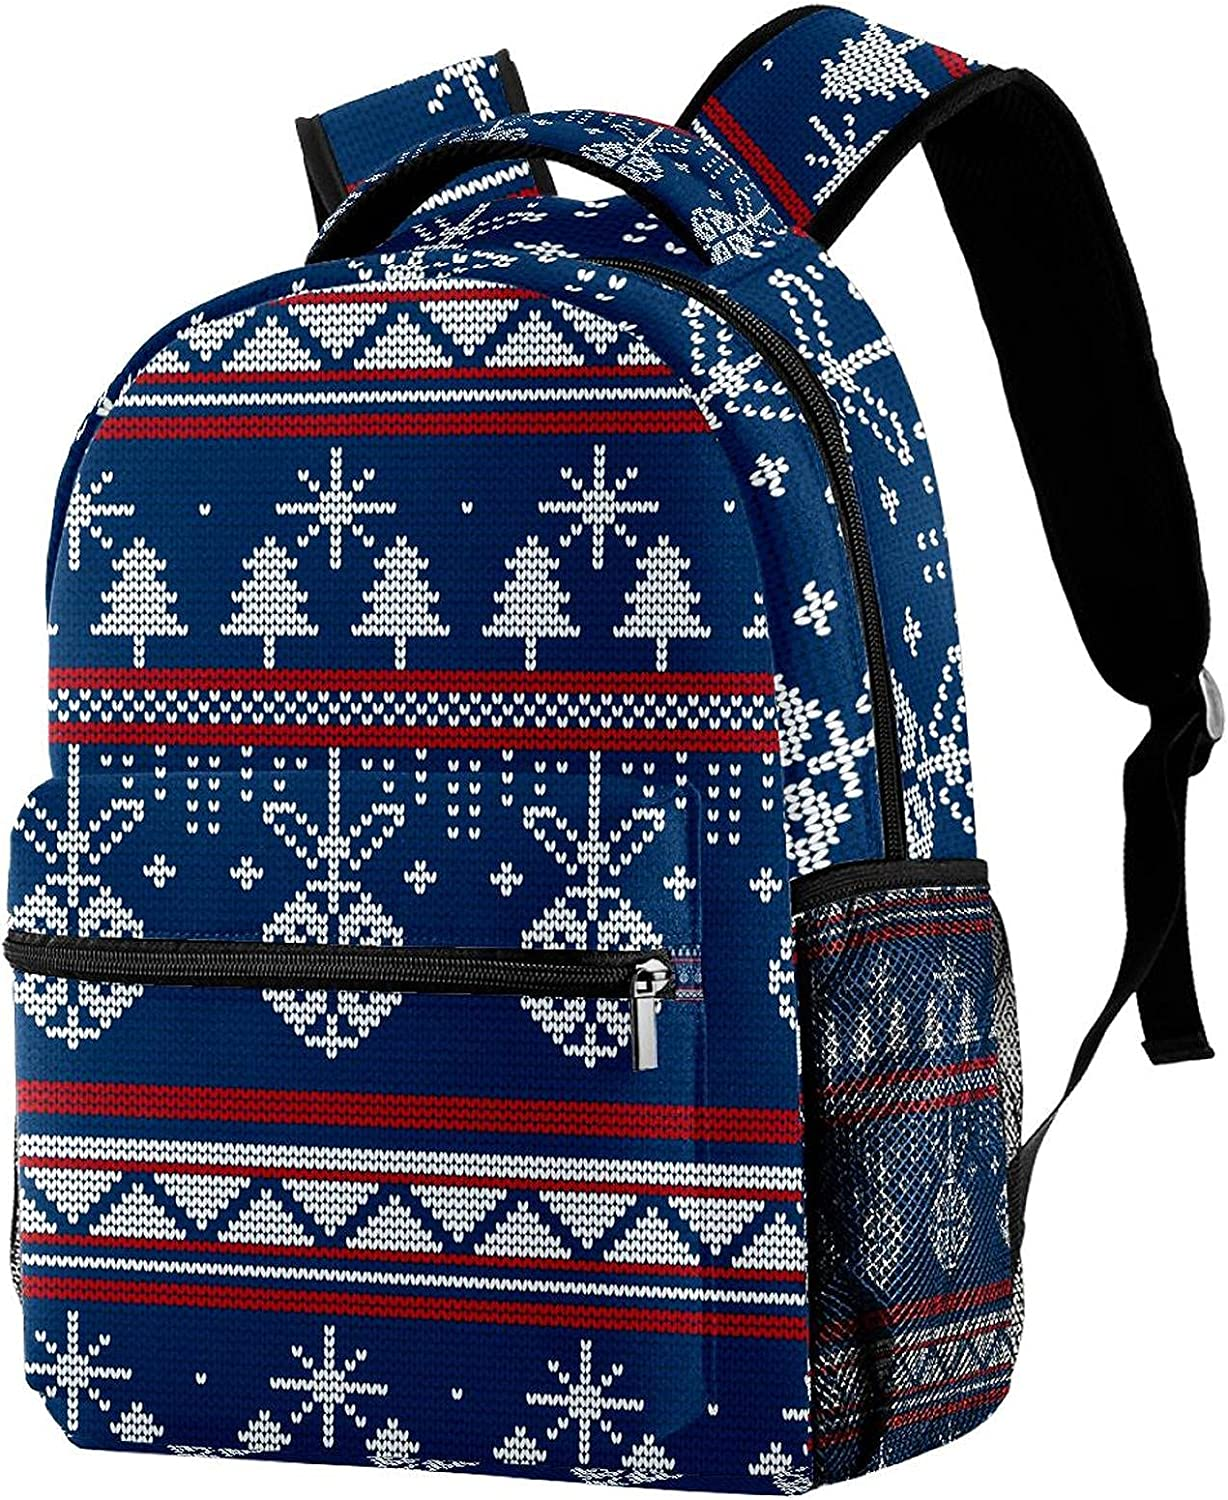 Lightweight Backpack Sacramento Mall College School Bag Adult Ranking TOP20 Daypack for Laptop